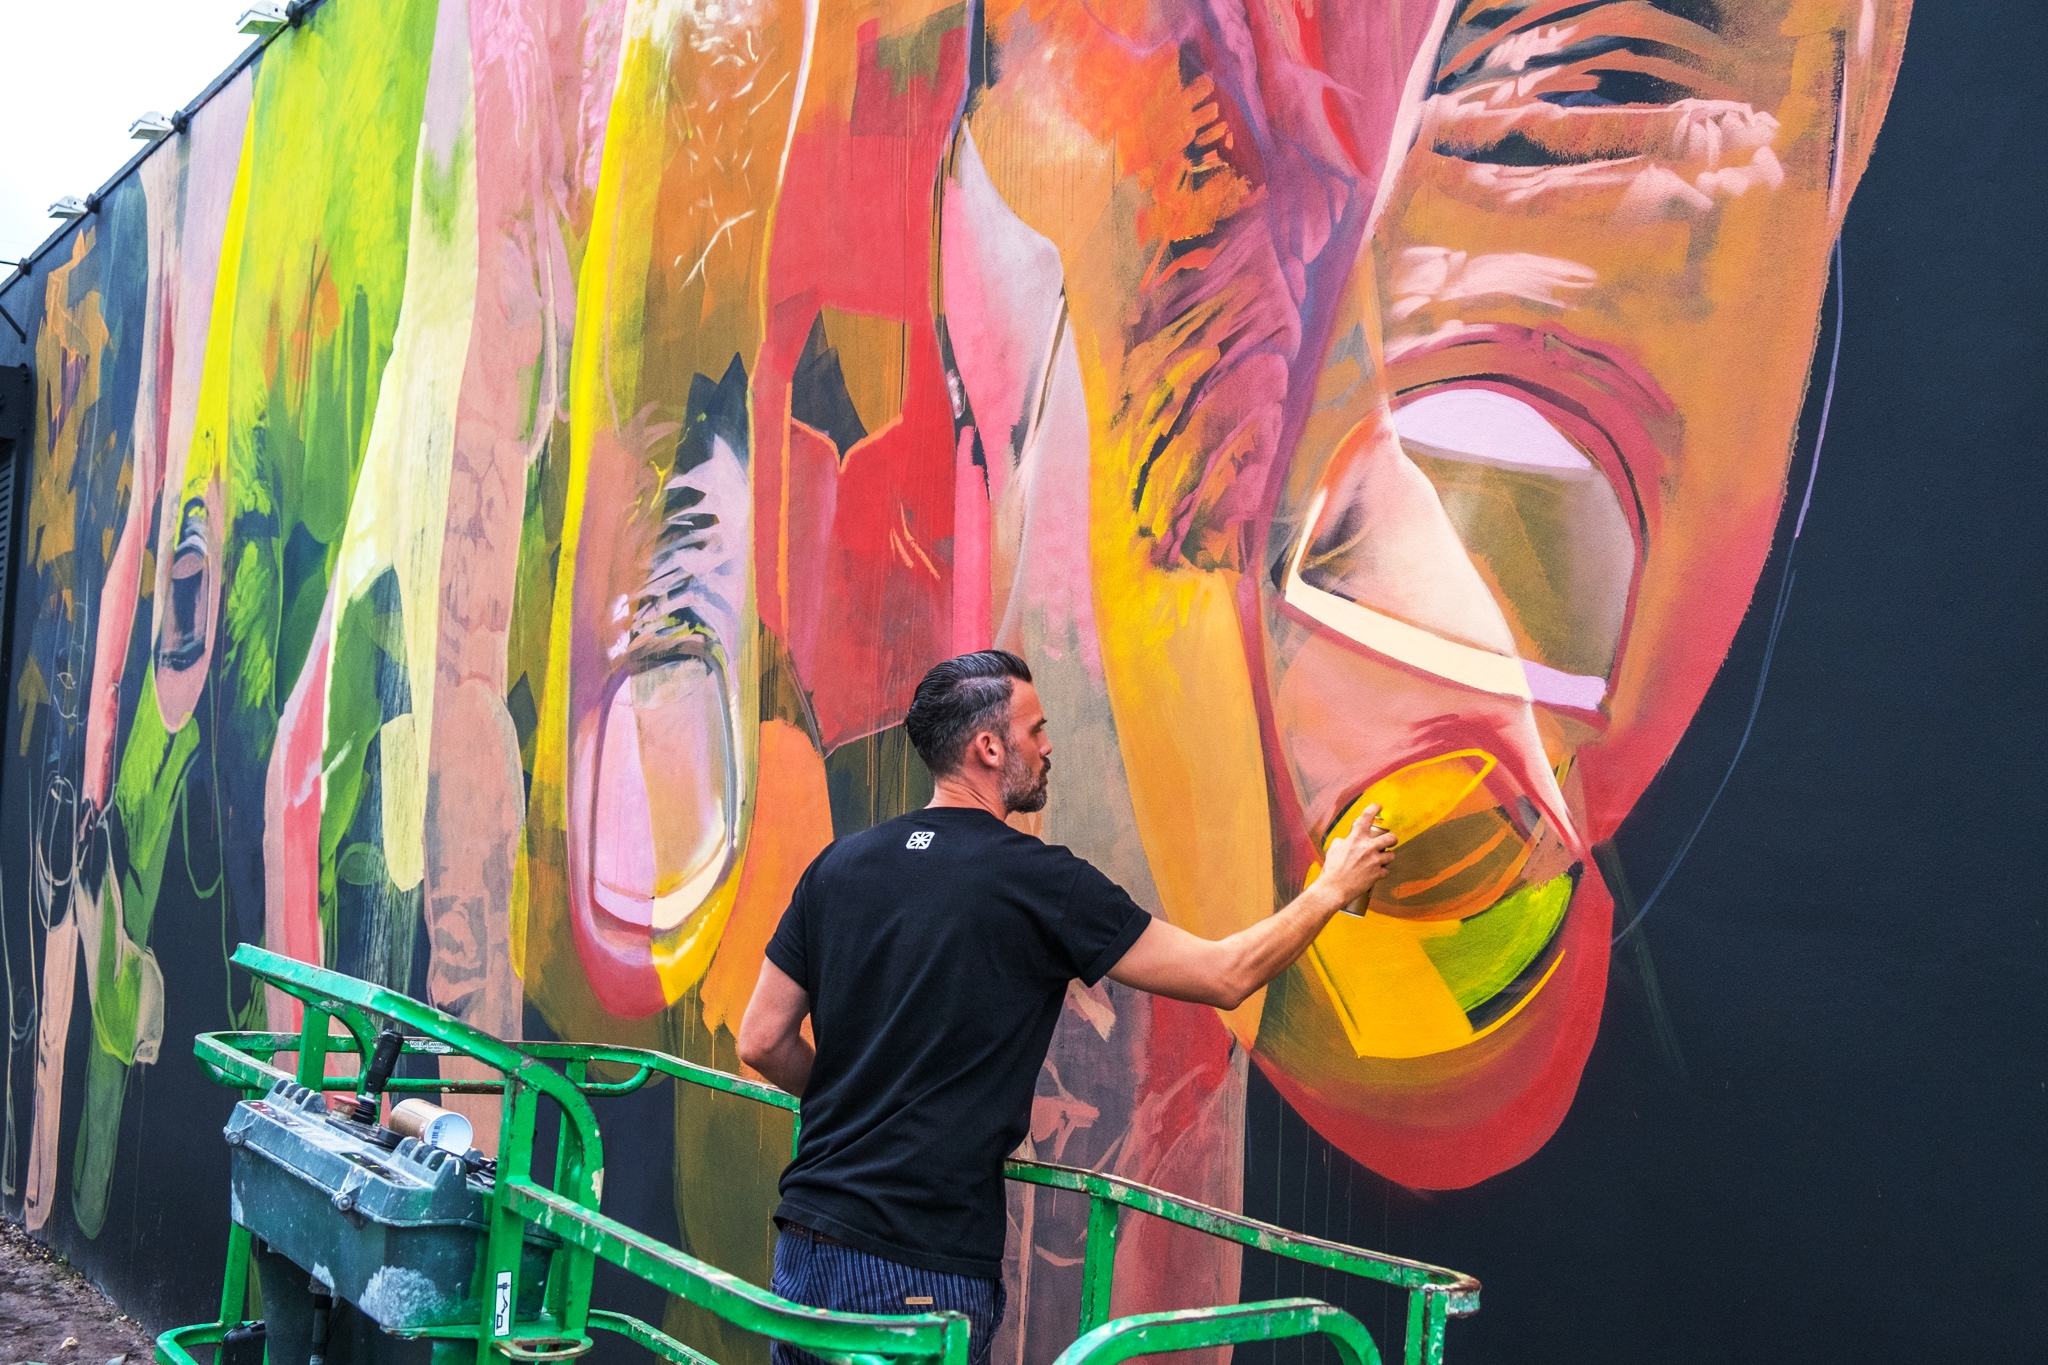 CASE AT WORK ON HIS MURAL ON THE FACE OF THE GGA GALLERY